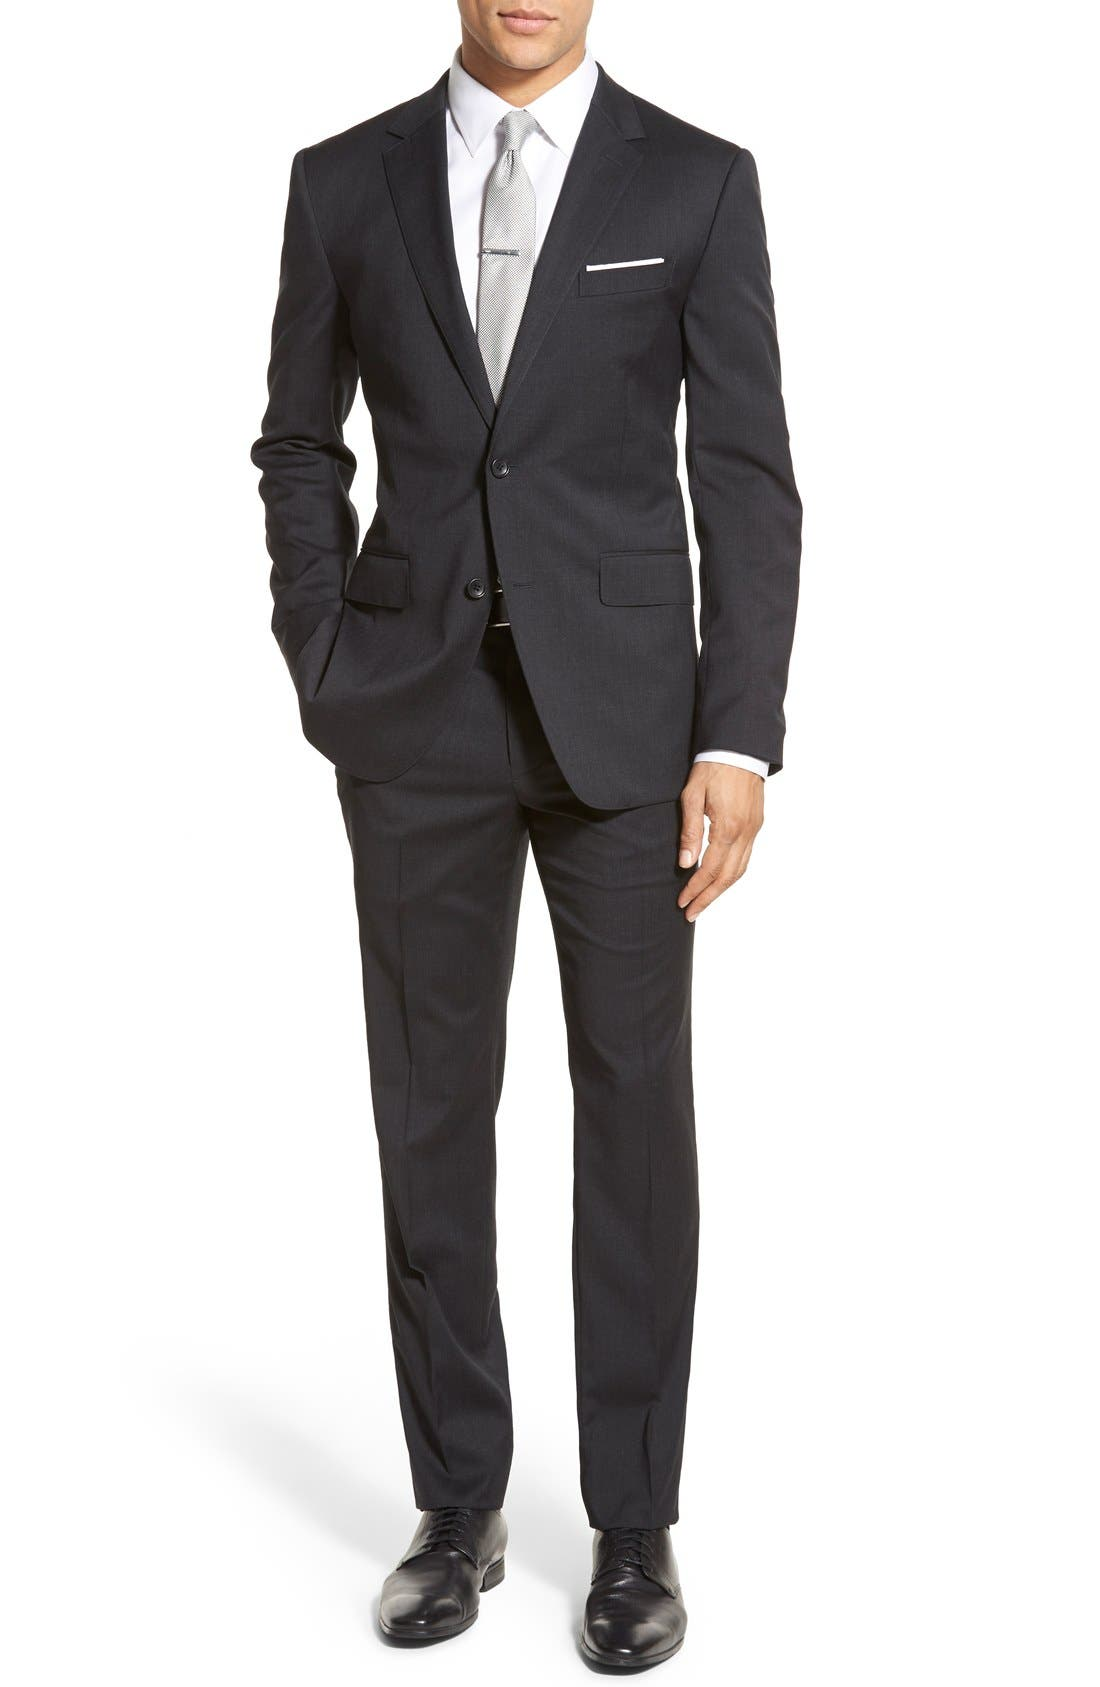 Bonobos 'Jetsetter' Trim Fit Sport Coat & Flat Front Trousers